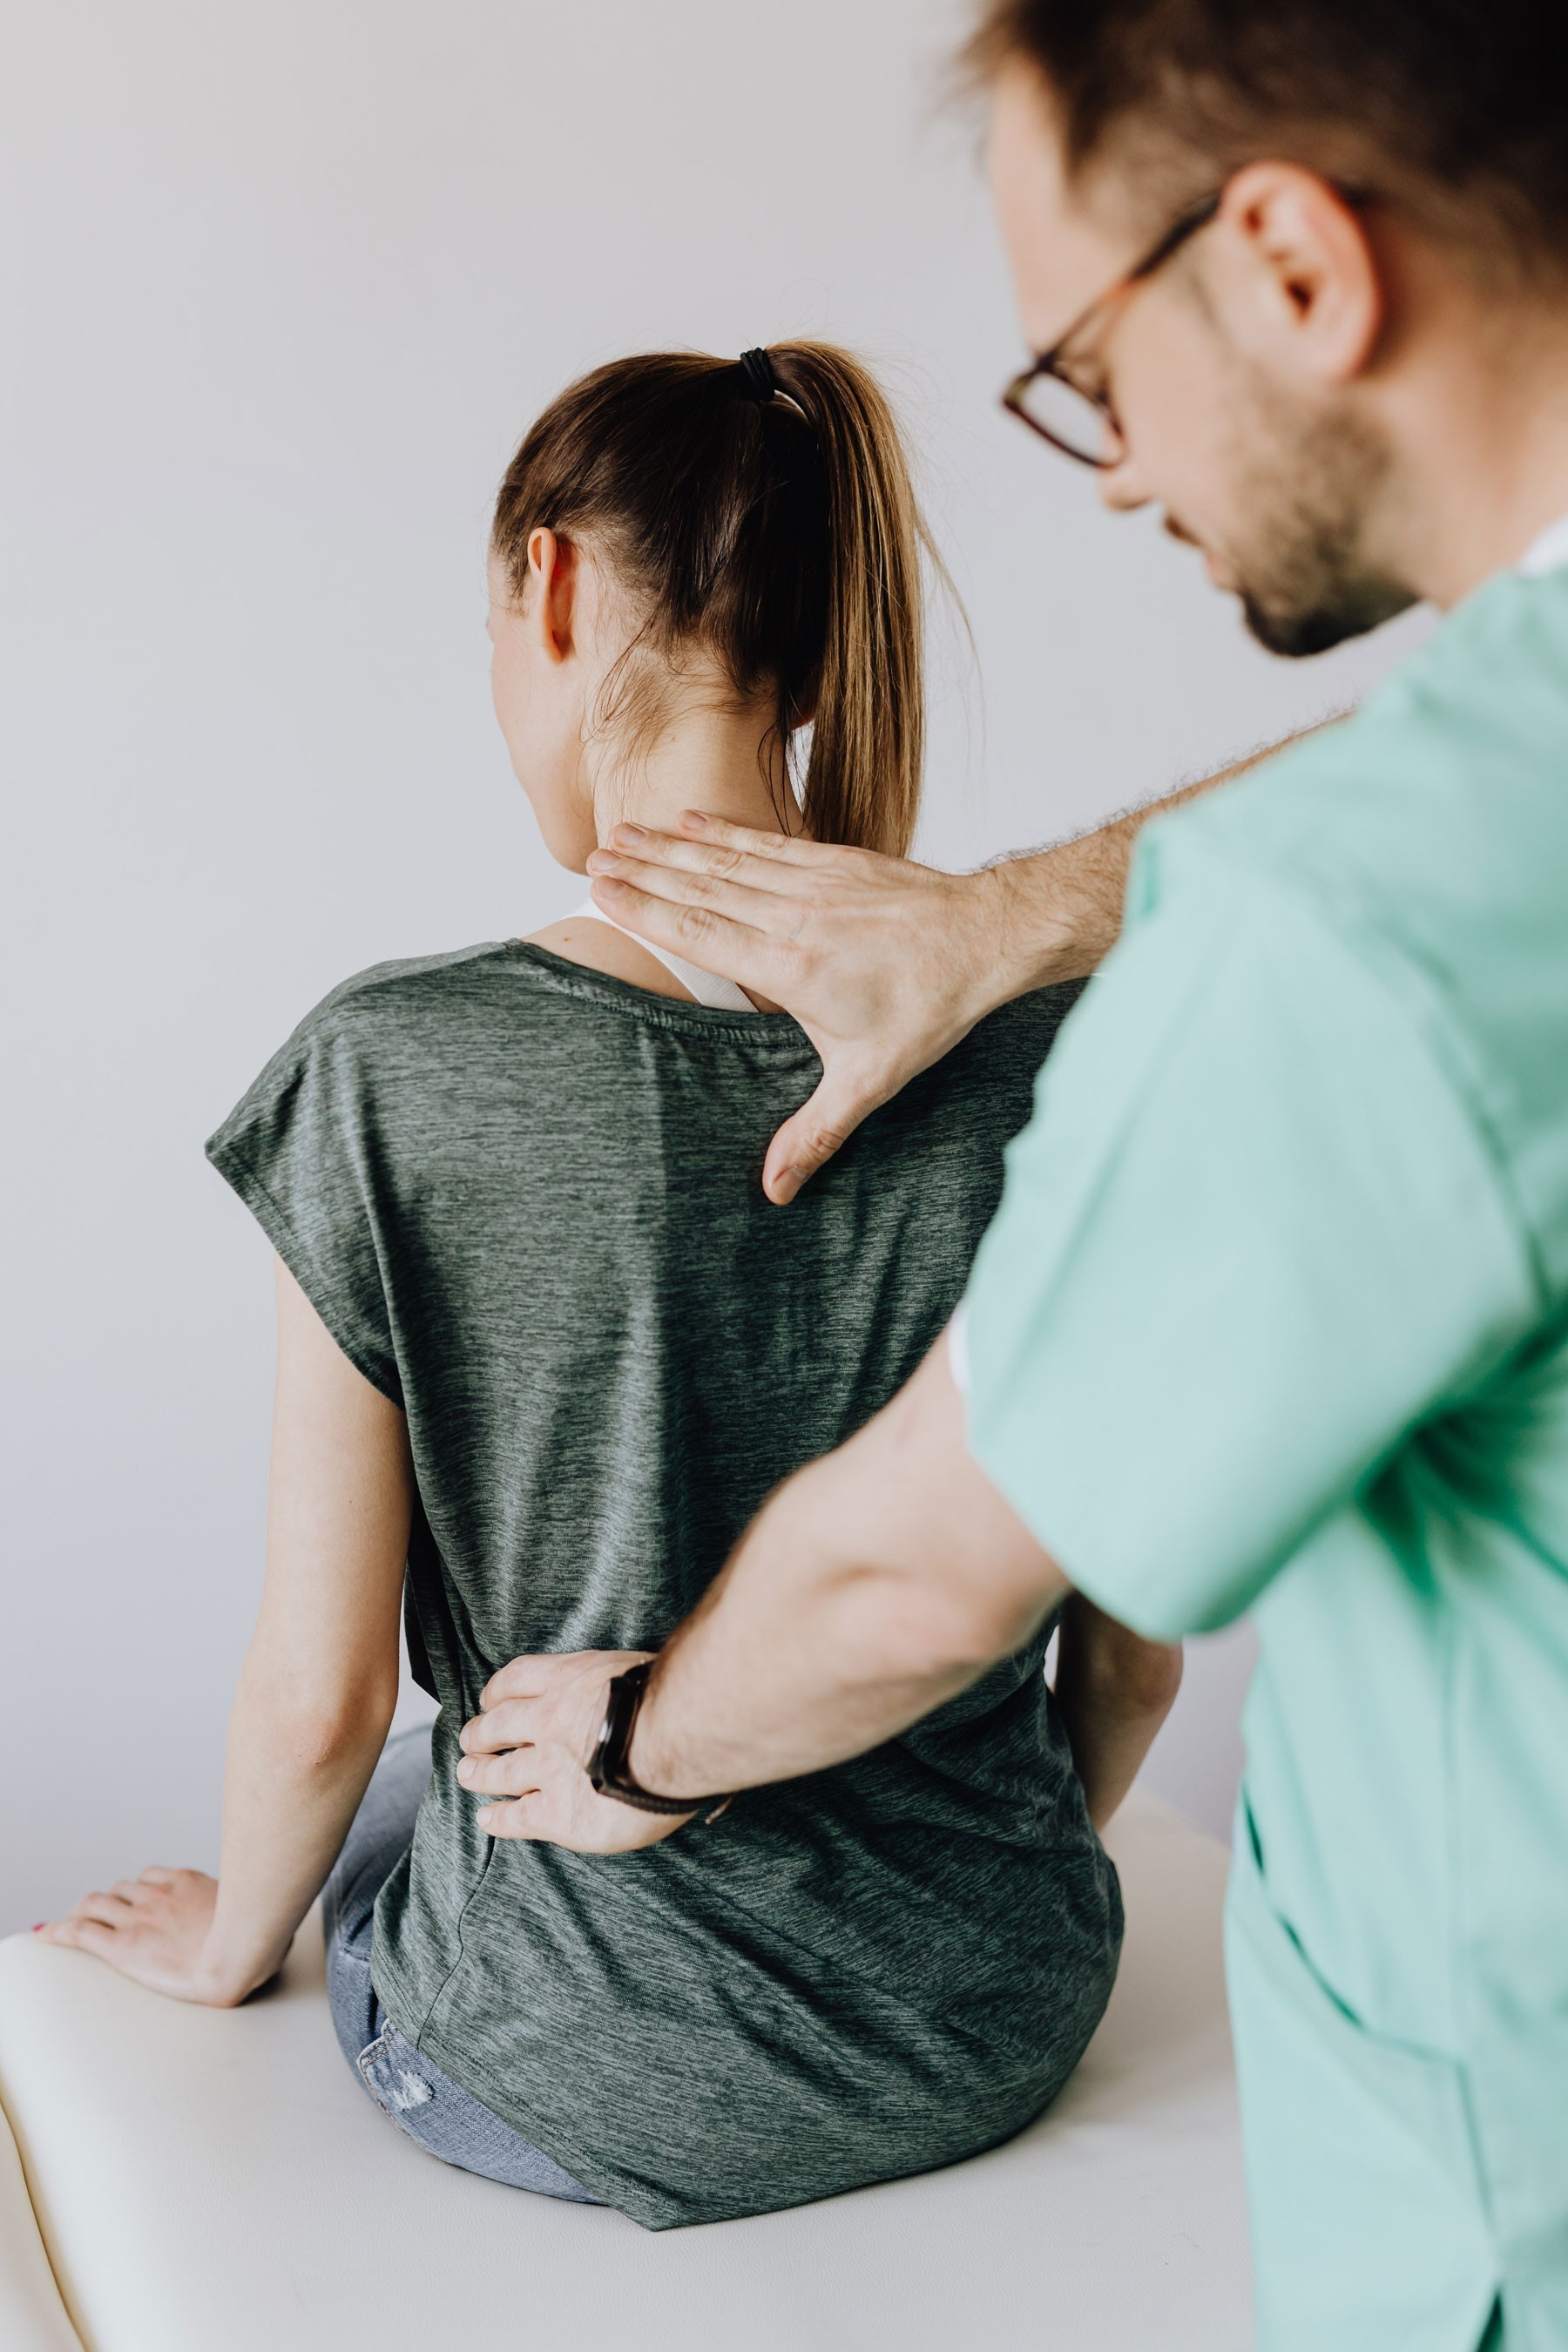 Ask a Chiropractor: What Happens during My Chiropractic Adjustment?